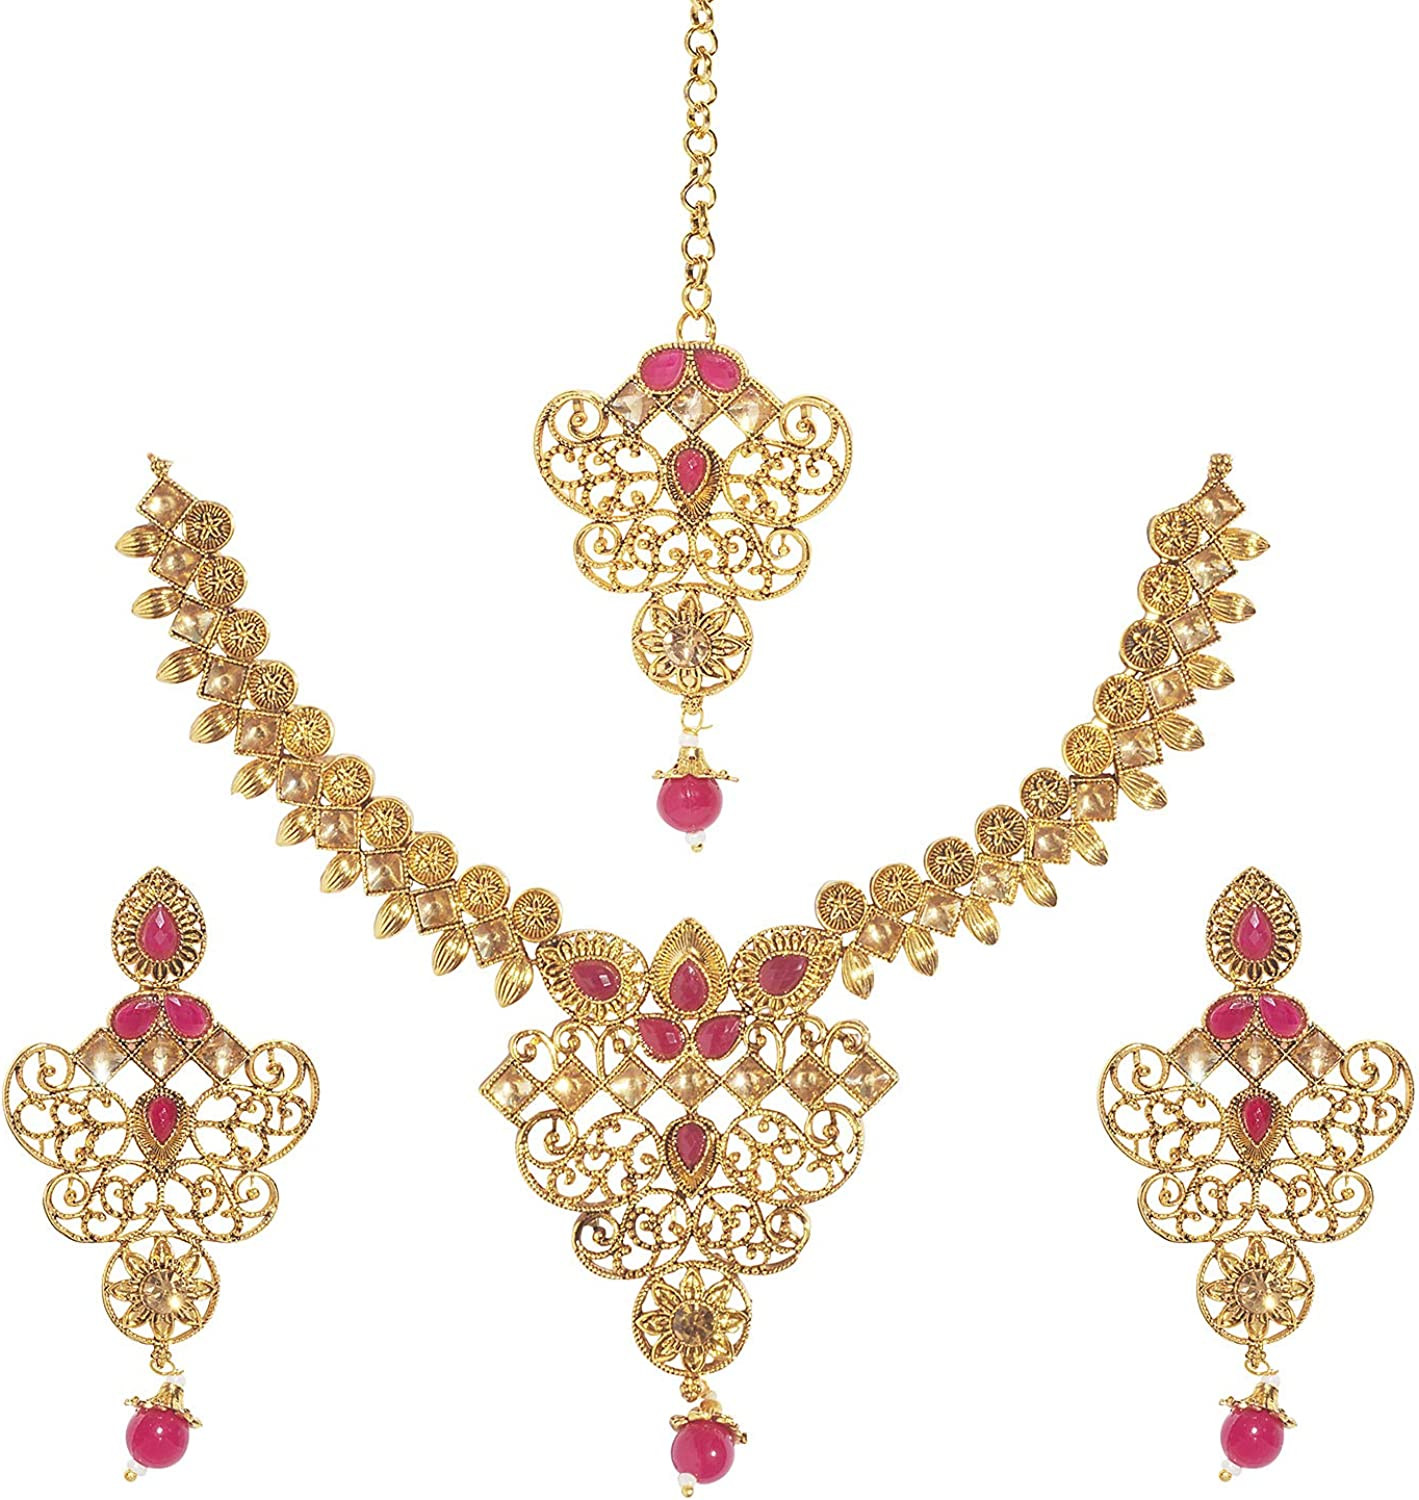 Bodha 18K Traditional Indian Bollywood Antique Gold Plated One Gram Bridal Jewellery Combo Necklace Set with Tikka and Earrings for Women (SJ_2868)